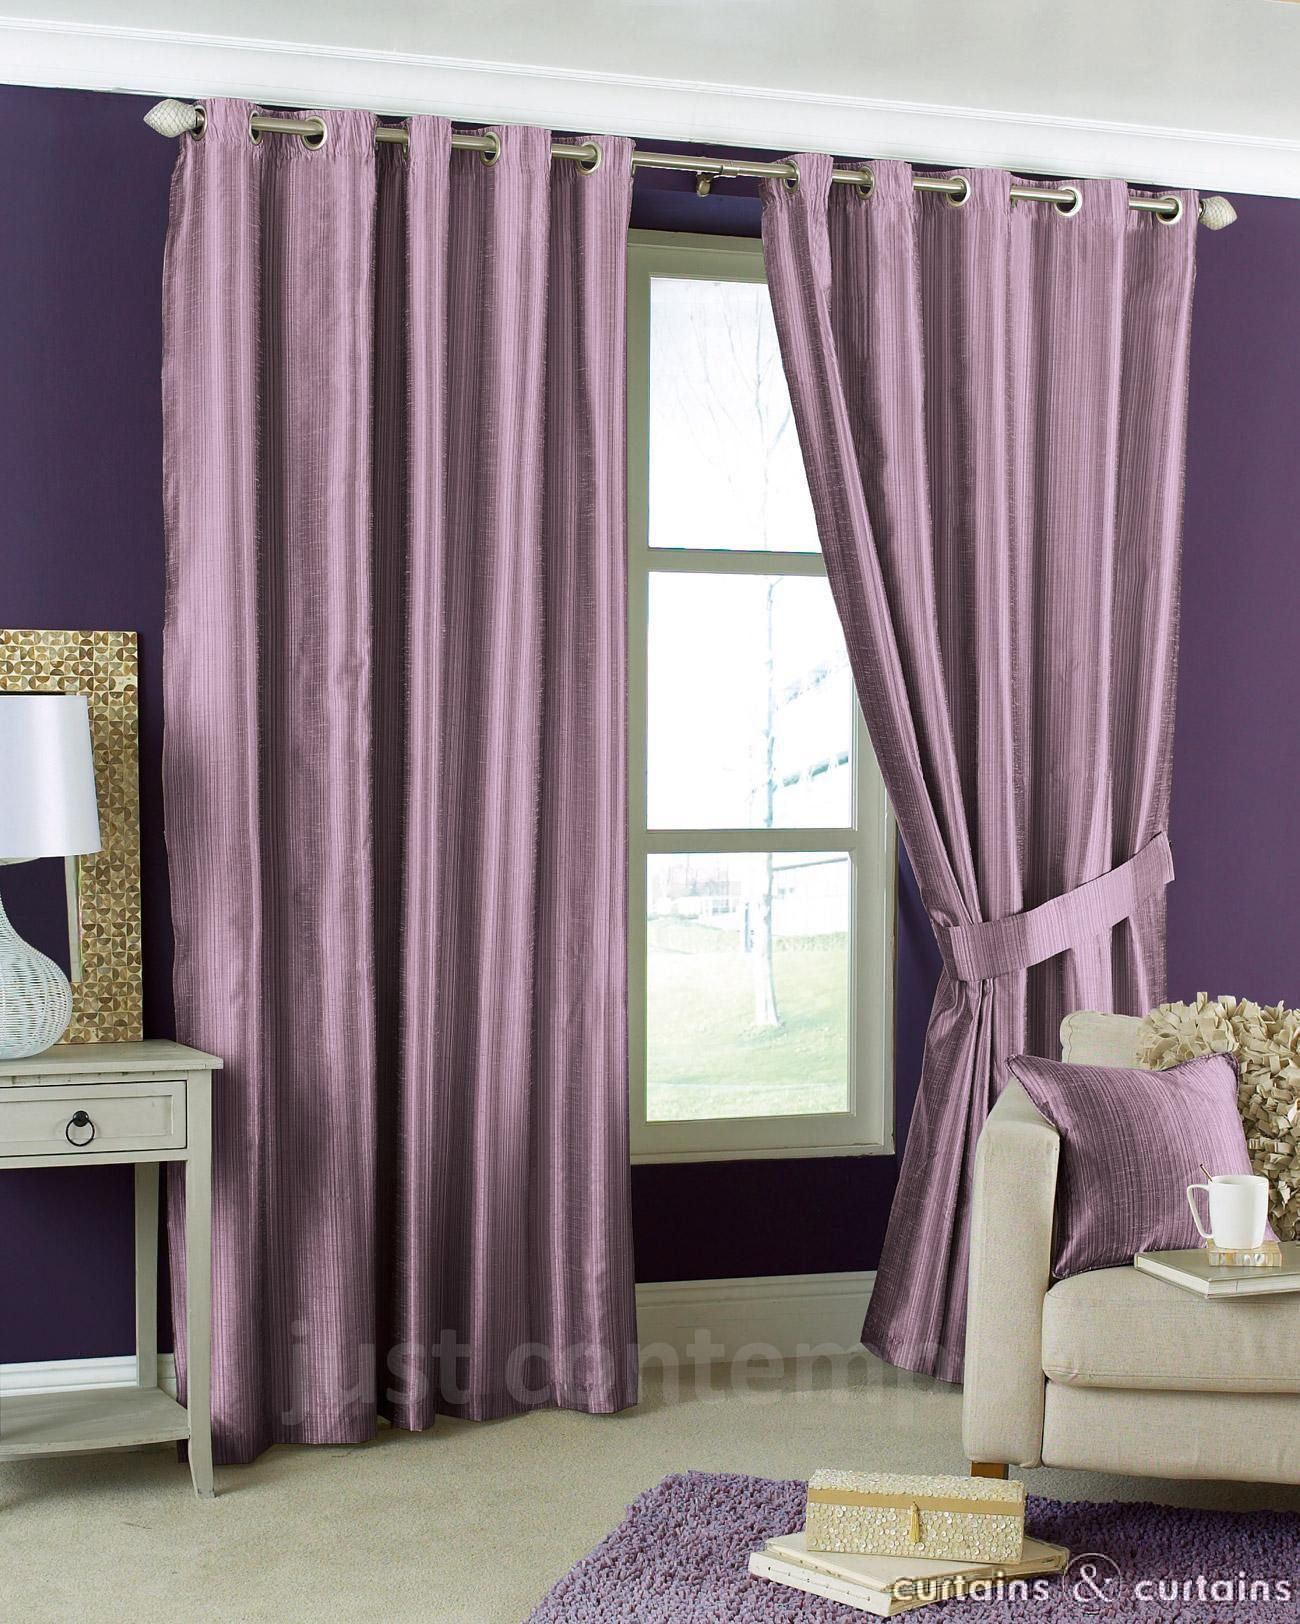 enchanting ideas fascinating and purple light curtain in on trends walls stylish plan bedroom home remodel with images curtains about